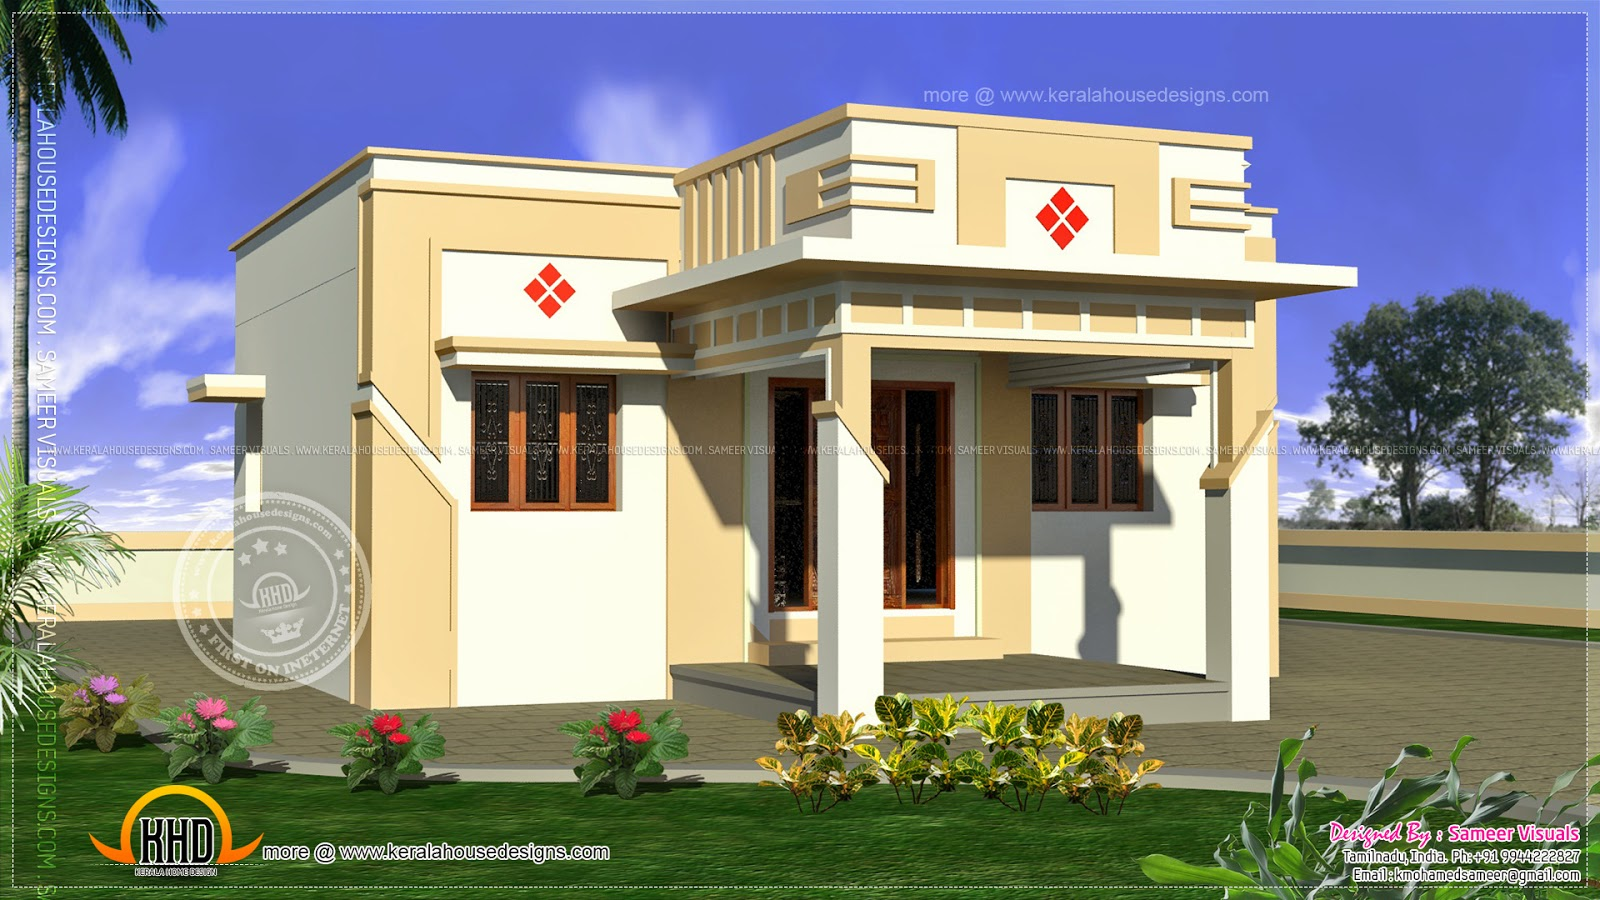 Small south indian home design keralahousedesigns for South indian small house designs